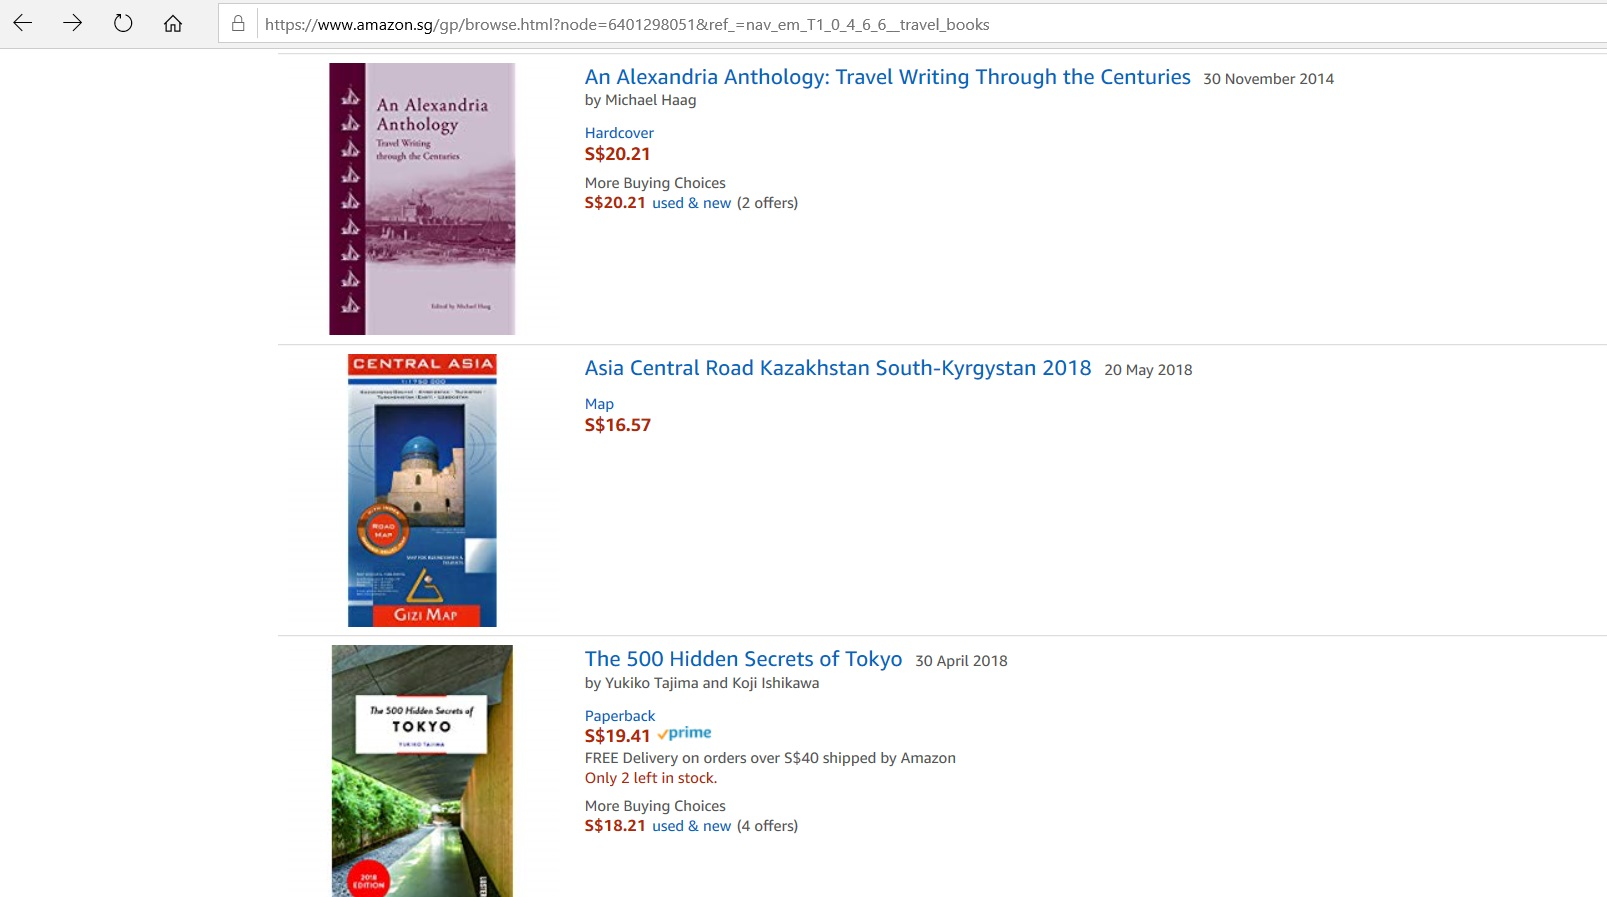 Listings for books on Amazon.